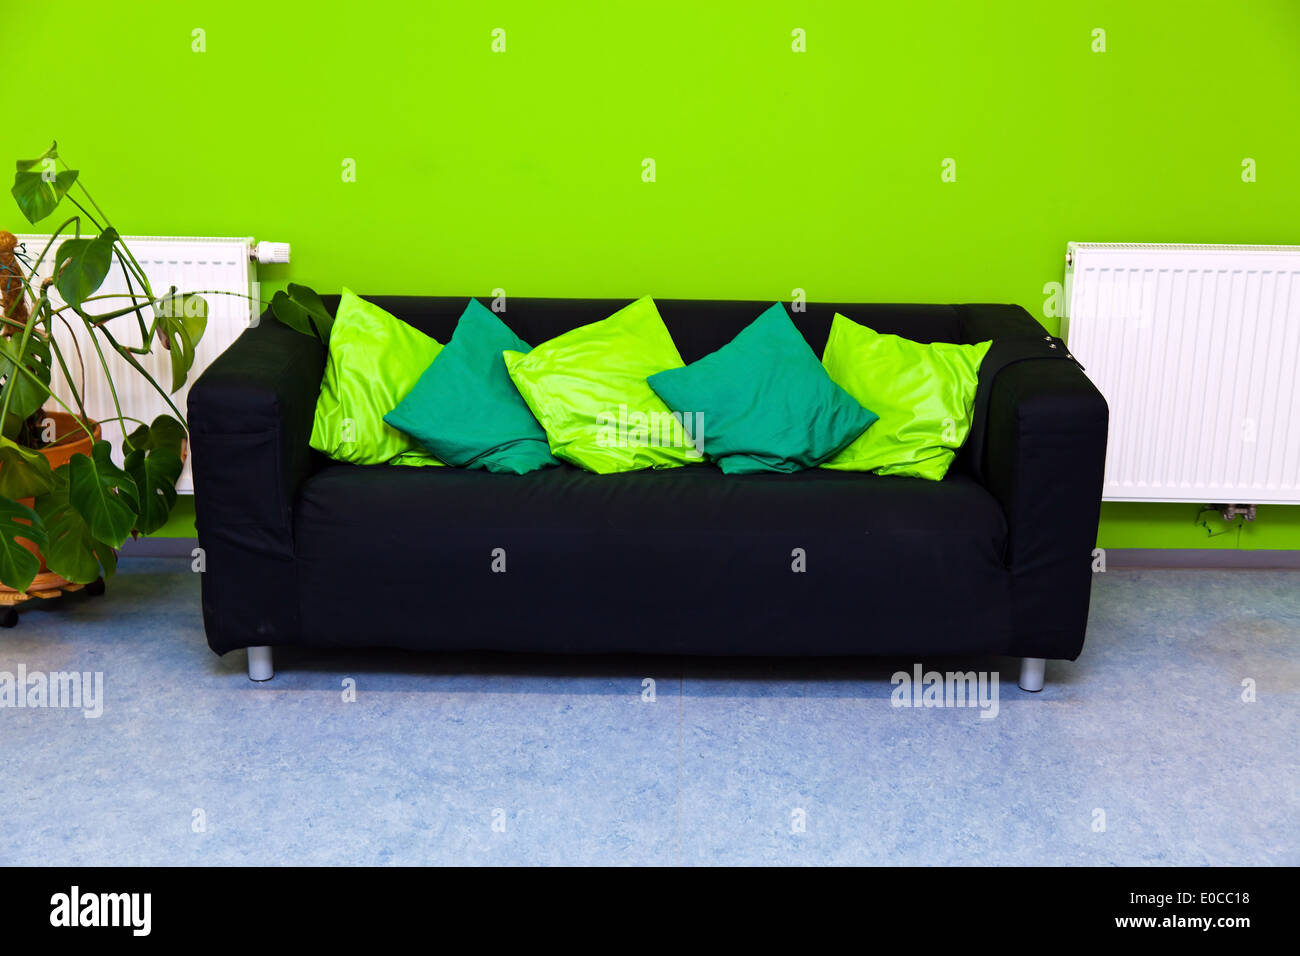 A Black Sofa In A Sitting Room Before A Green Wall, Eine Schwarzes Sofa In